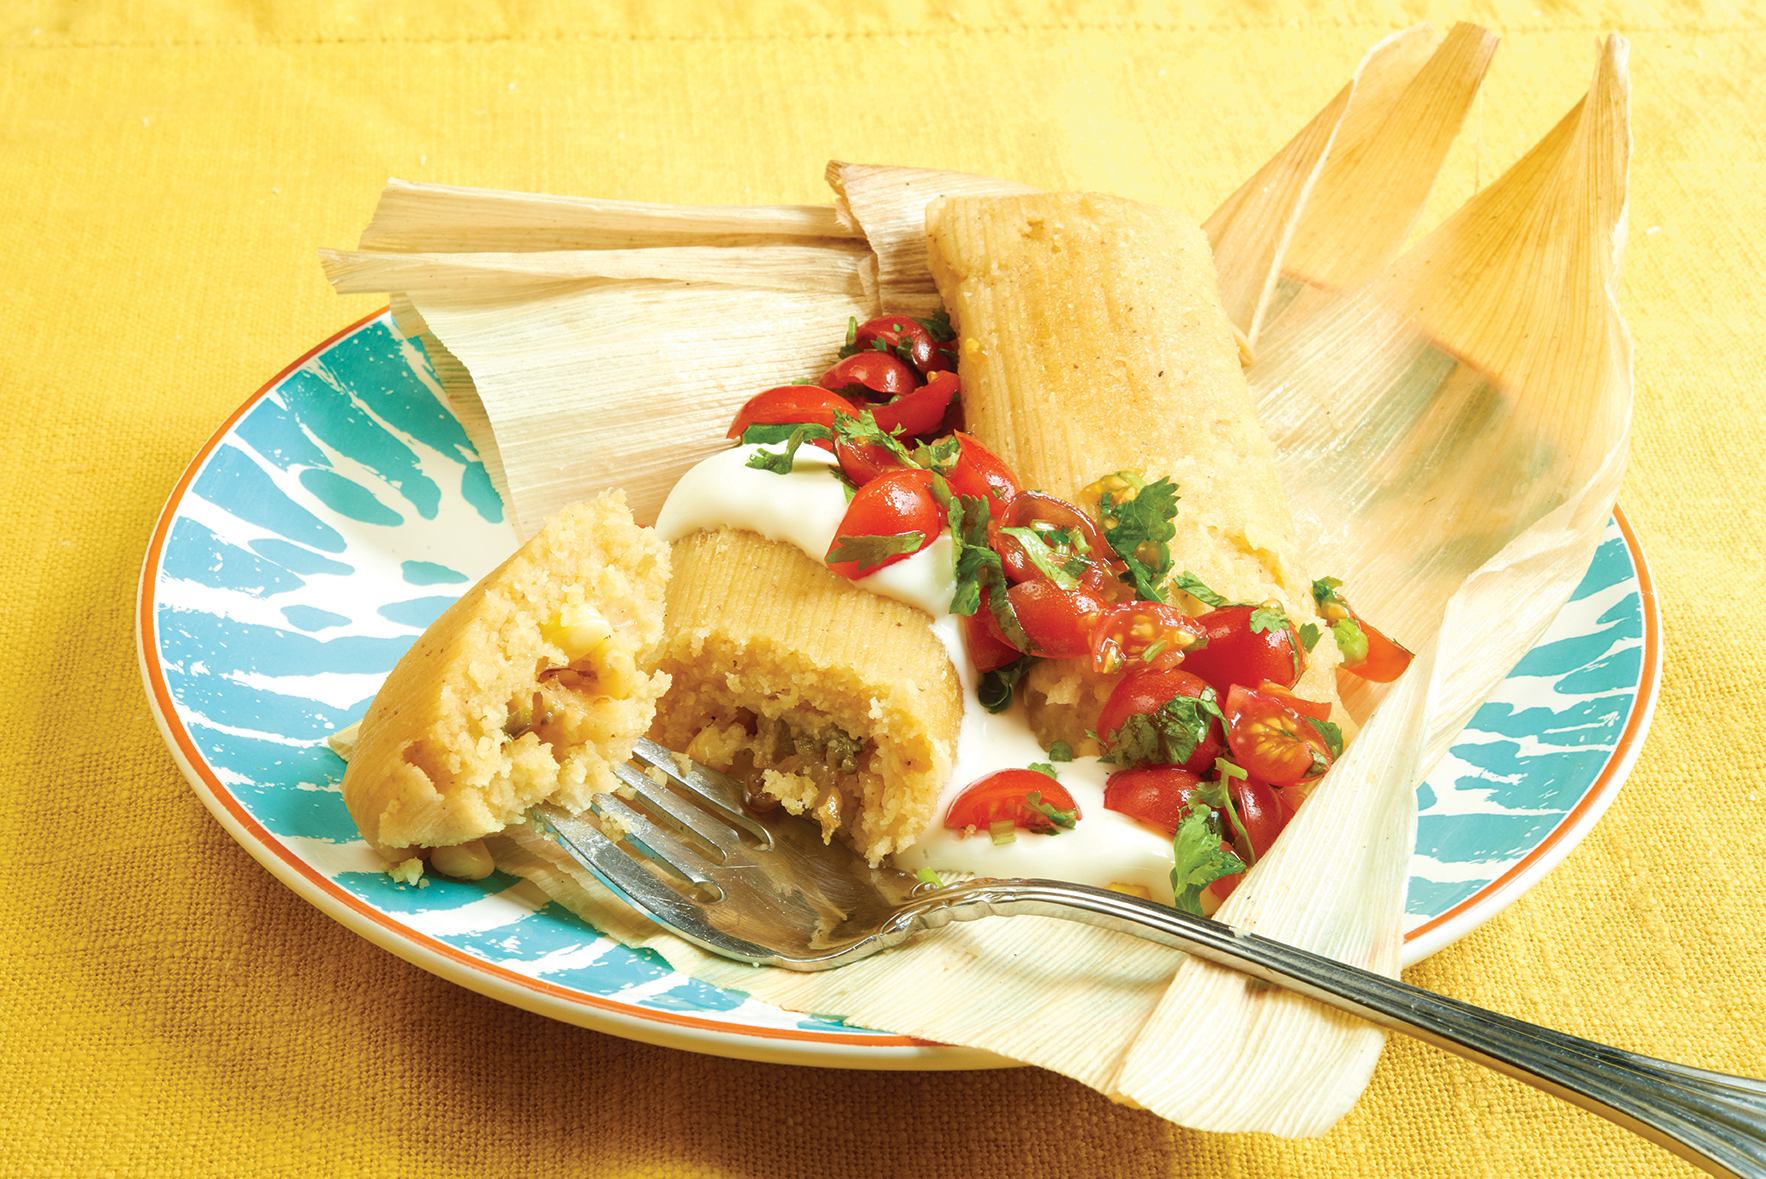 trad_tamales_photo_by_D_Perri-copy.jpg